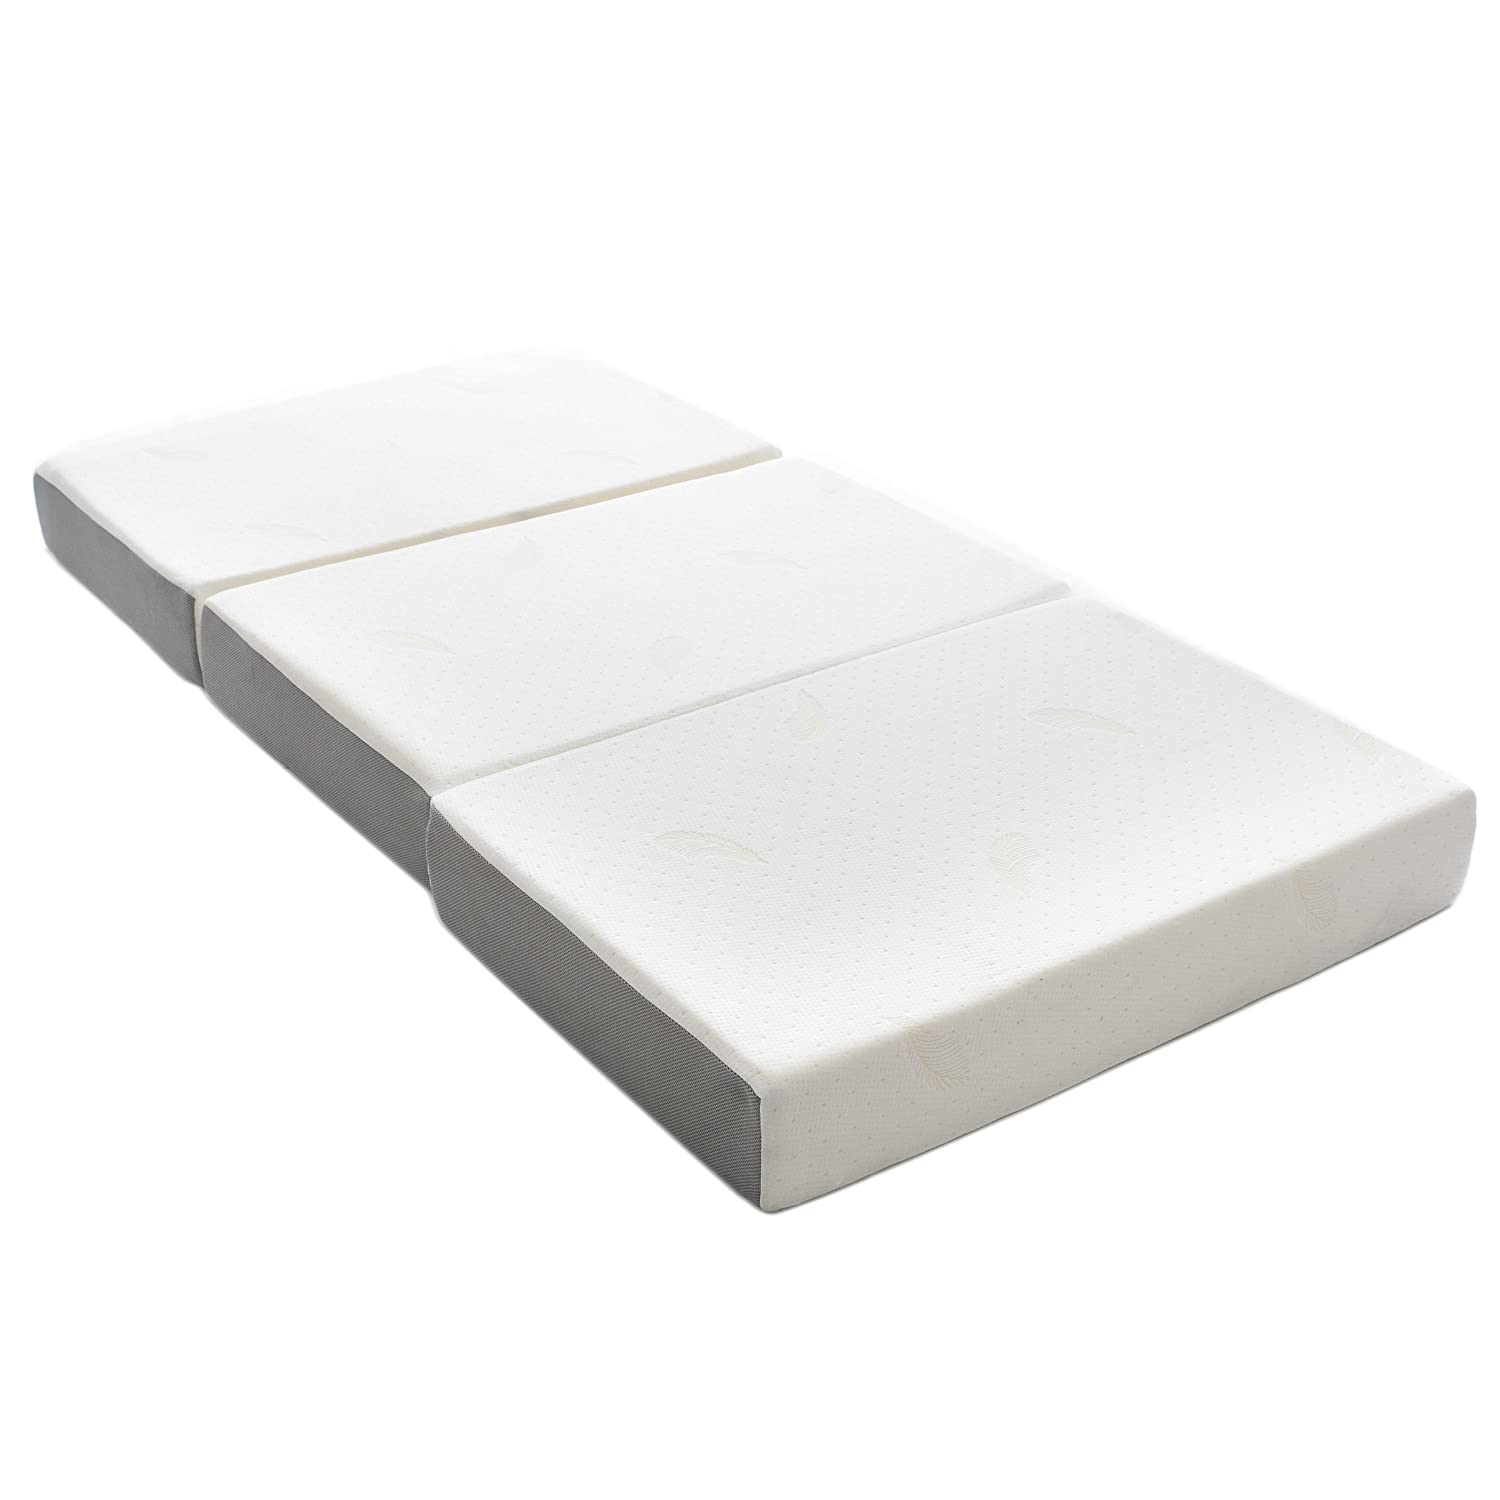 Tri fold mattress pad costcotri fold mattress pad costco for Tri fold futon mattress cover